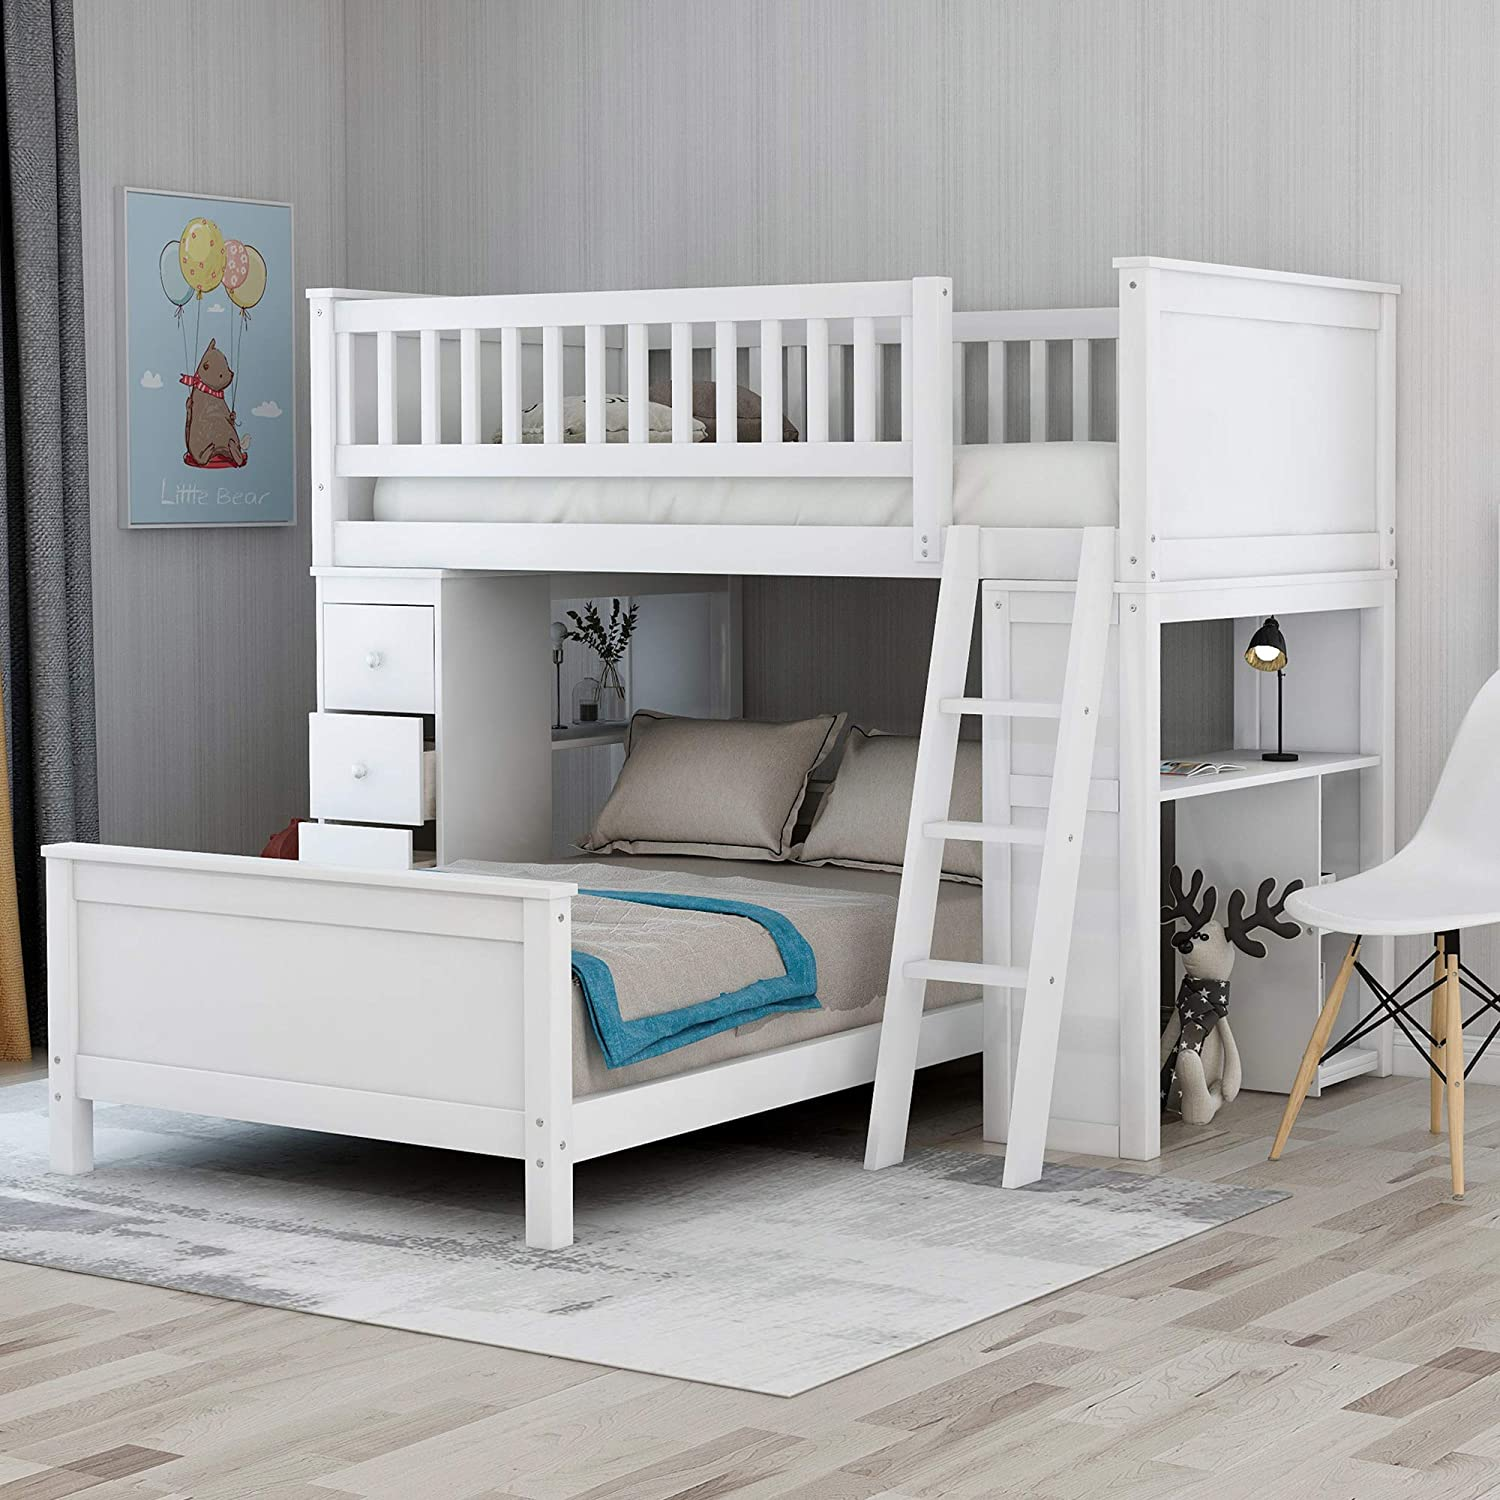 Amazon Com Twin Over Twin Size Bunk Beds Loft Bed With Shelves 4 Drawers For Kids White Kitchen Dining